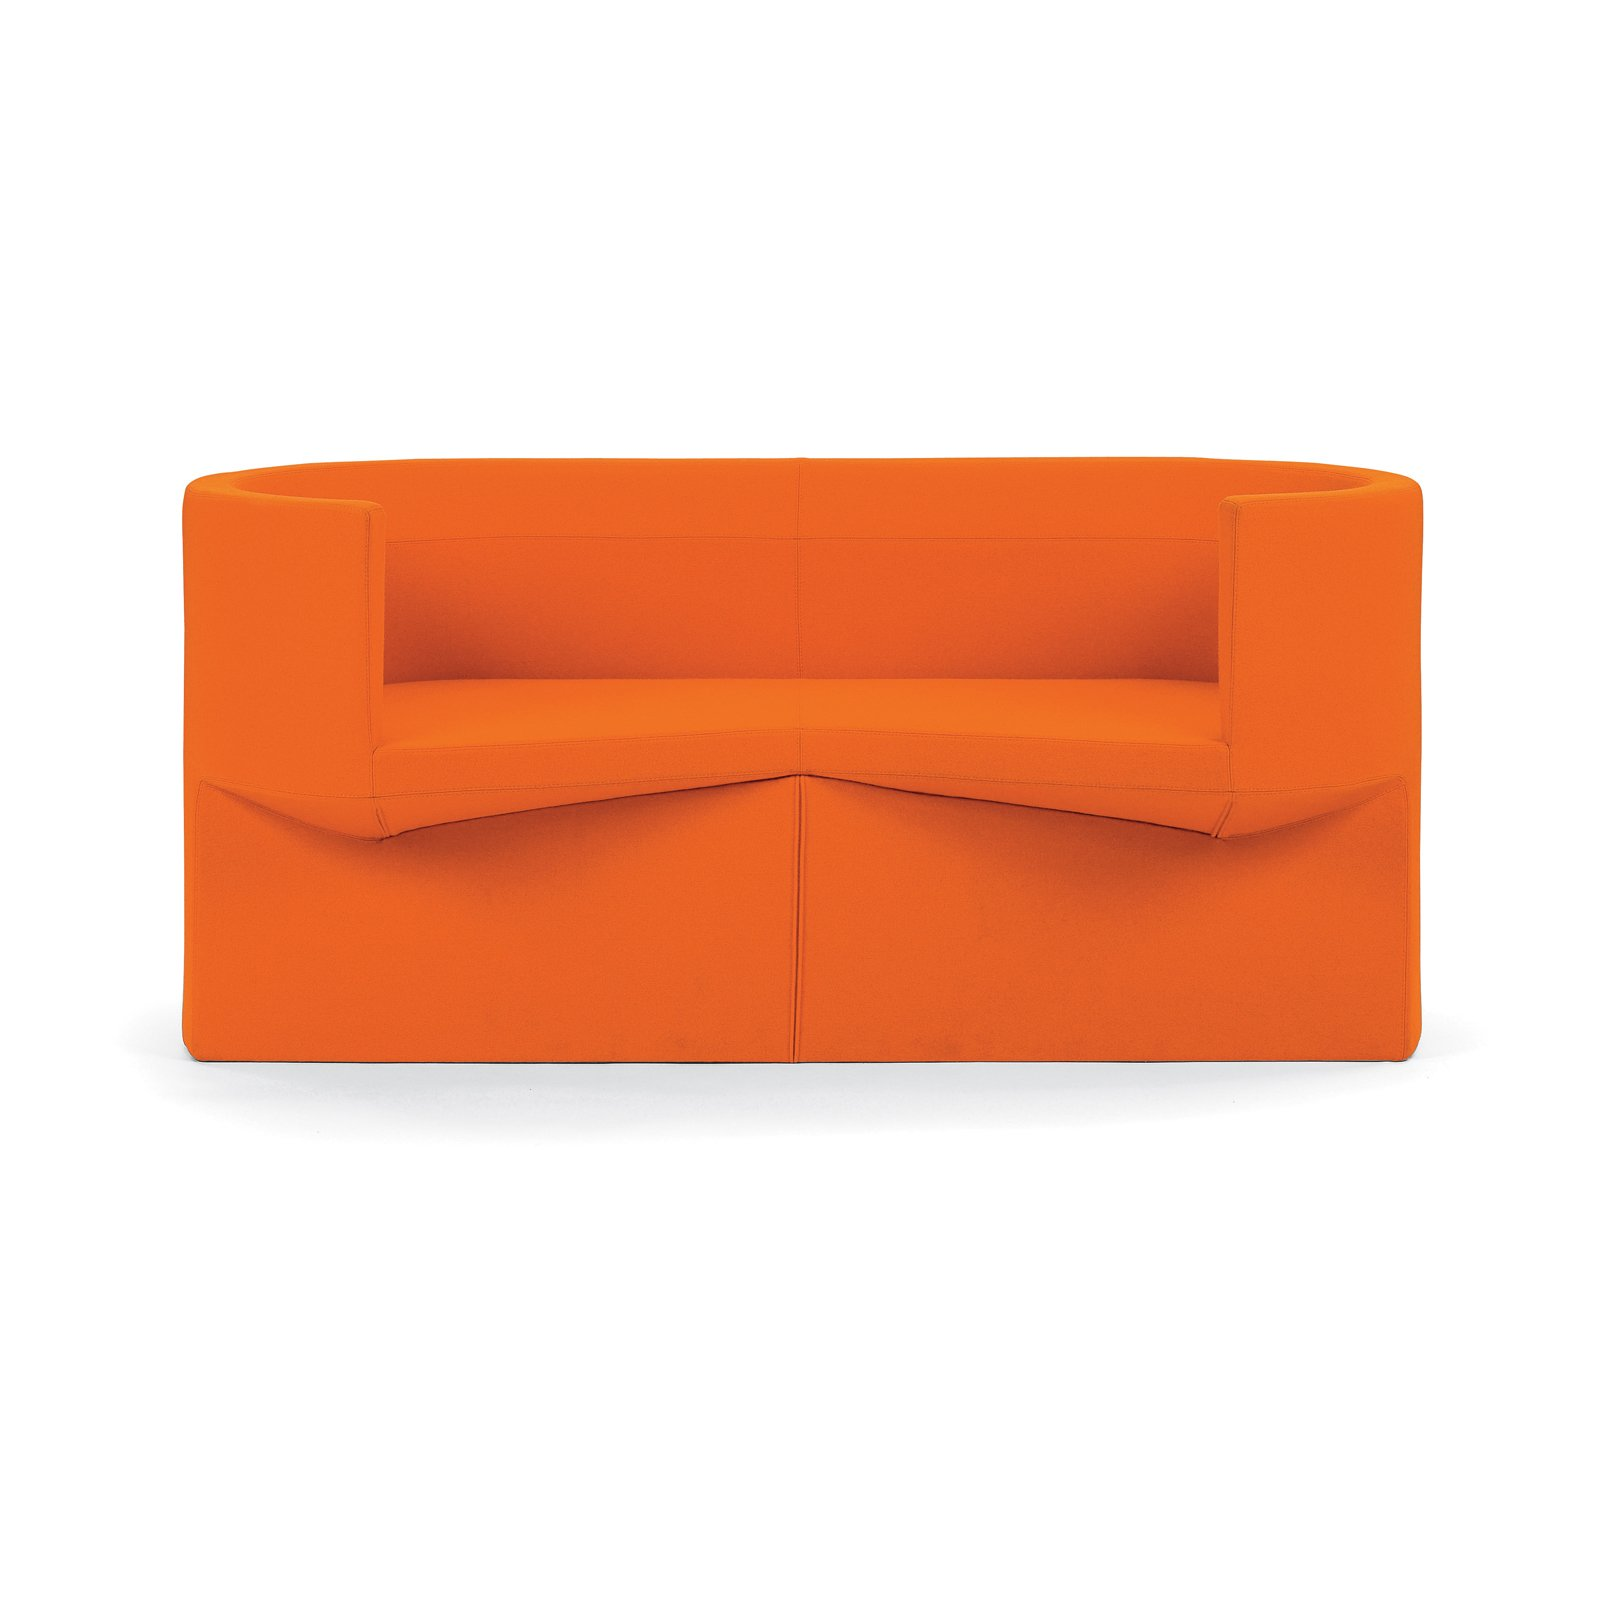 Odin couch for ClassiCon, 2005.  Photo 10 of 26 in Industrial Designer Focus: Konstantin Grcic